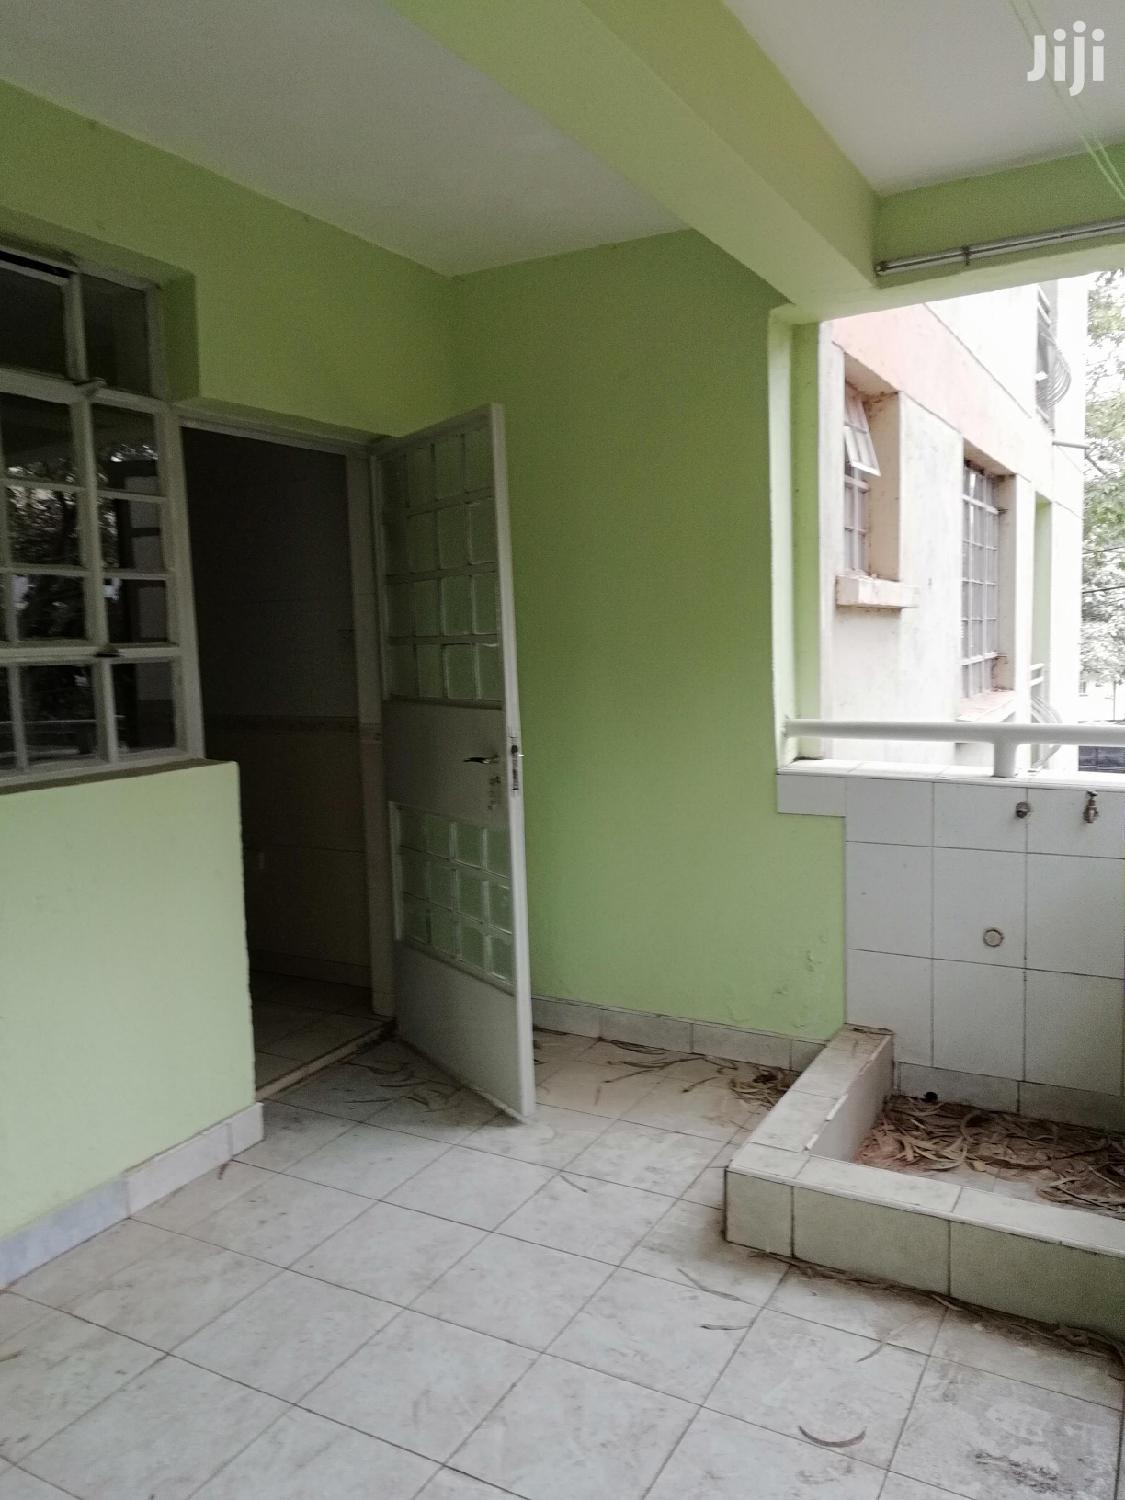 Property World,Sq With Kutche,Wardrobes and Very Secure | Houses & Apartments For Rent for sale in Kileleshwa, Nairobi, Kenya